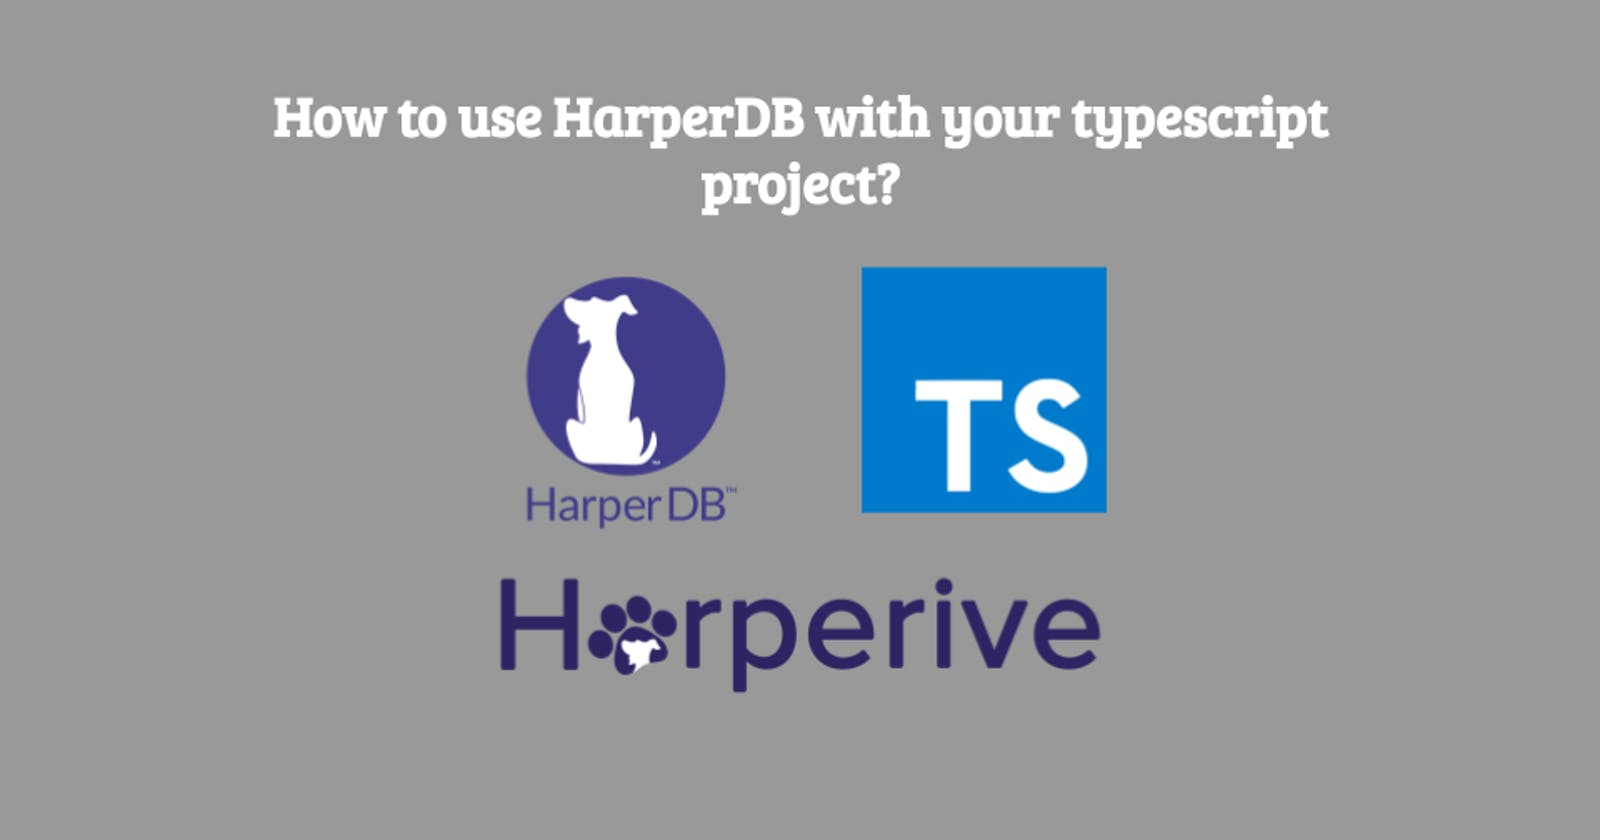 How to use HarperDB with your typescript project?